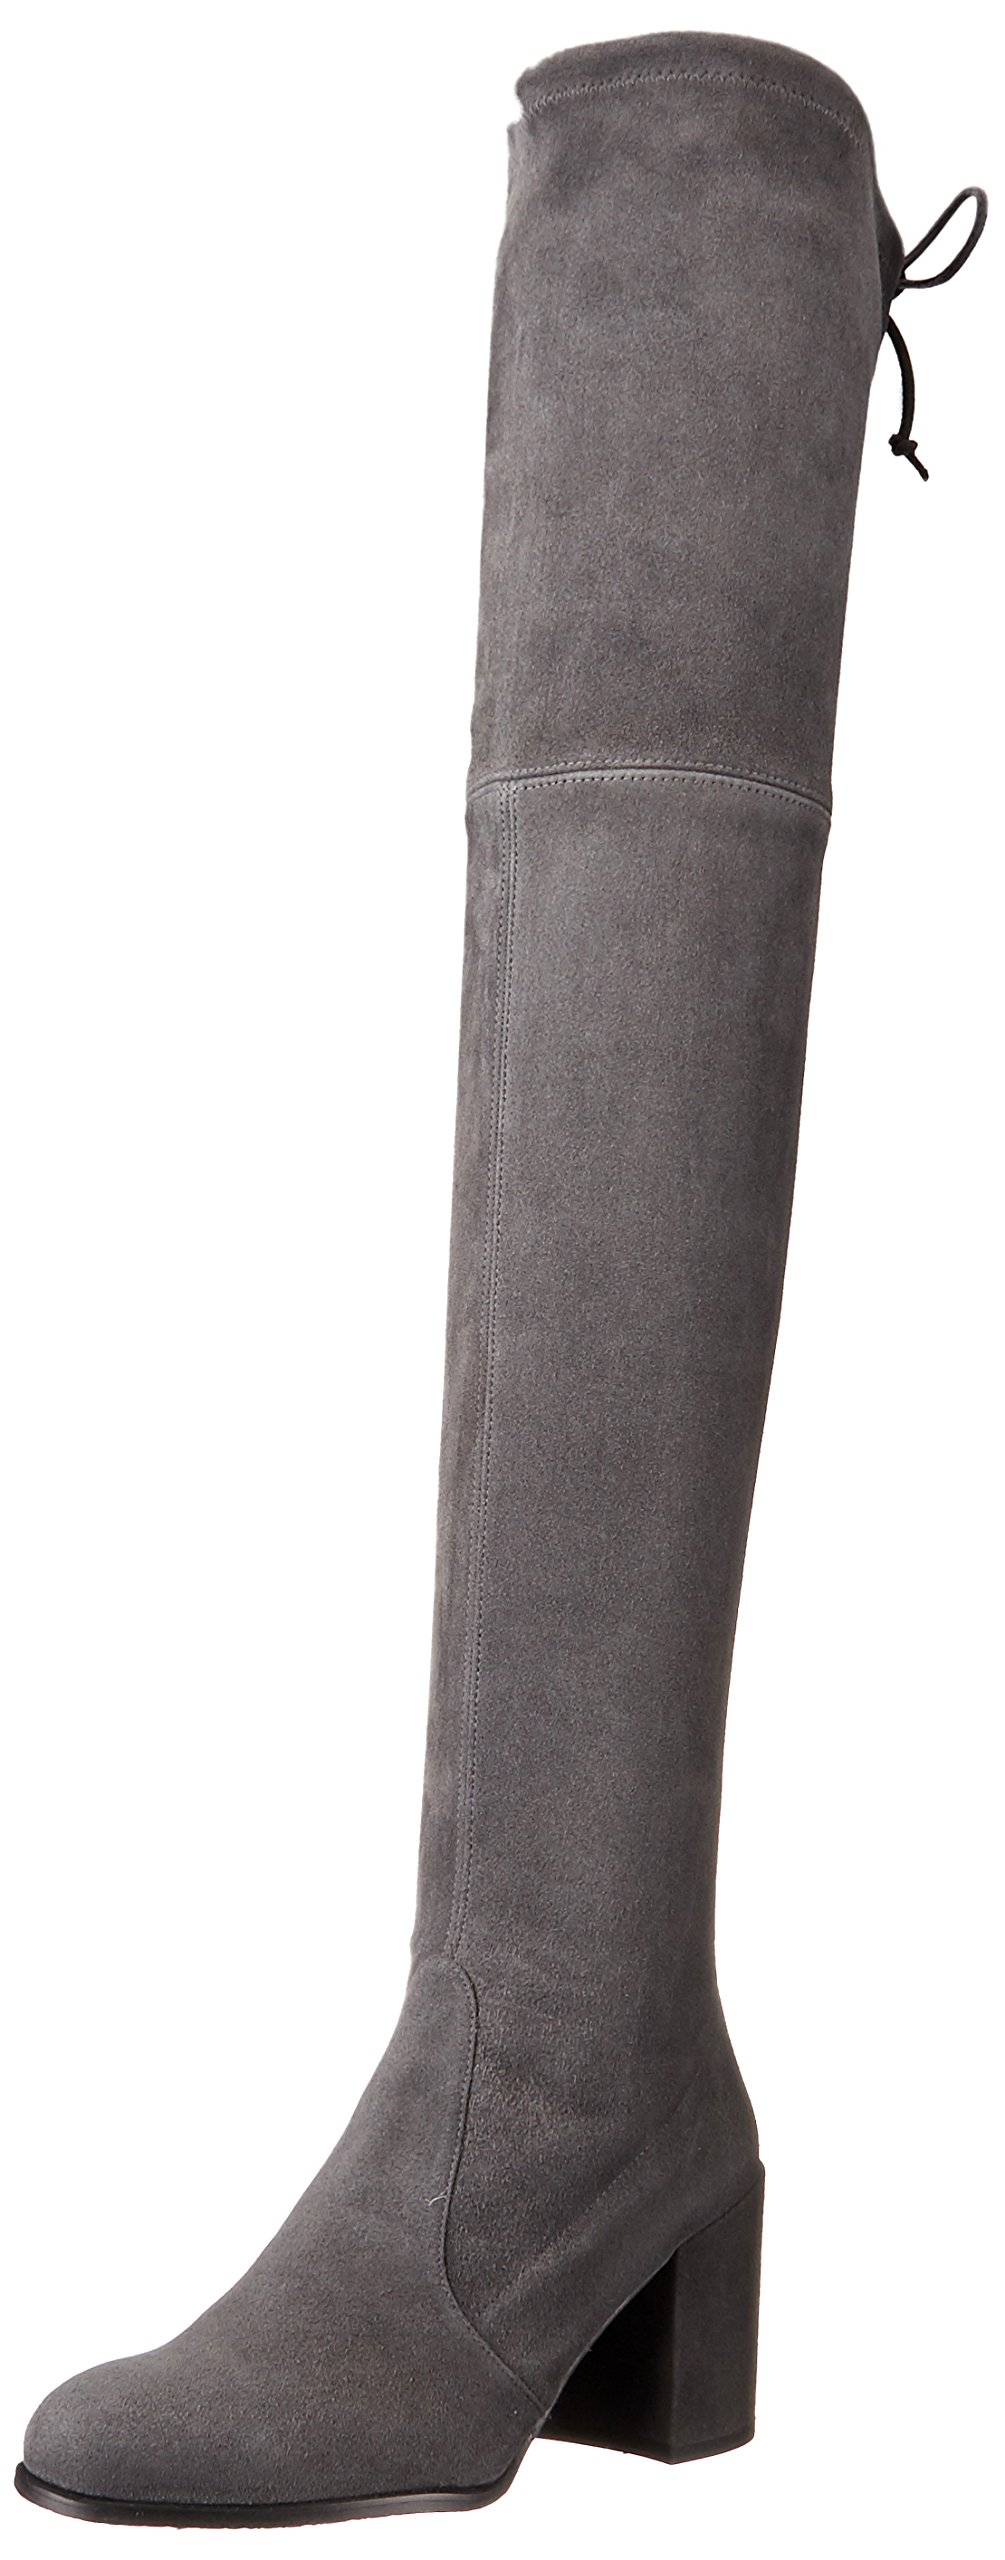 Stuart Weitzman Women's Tieland Over The Knee Boot, Slate Suede, 6 Medium US